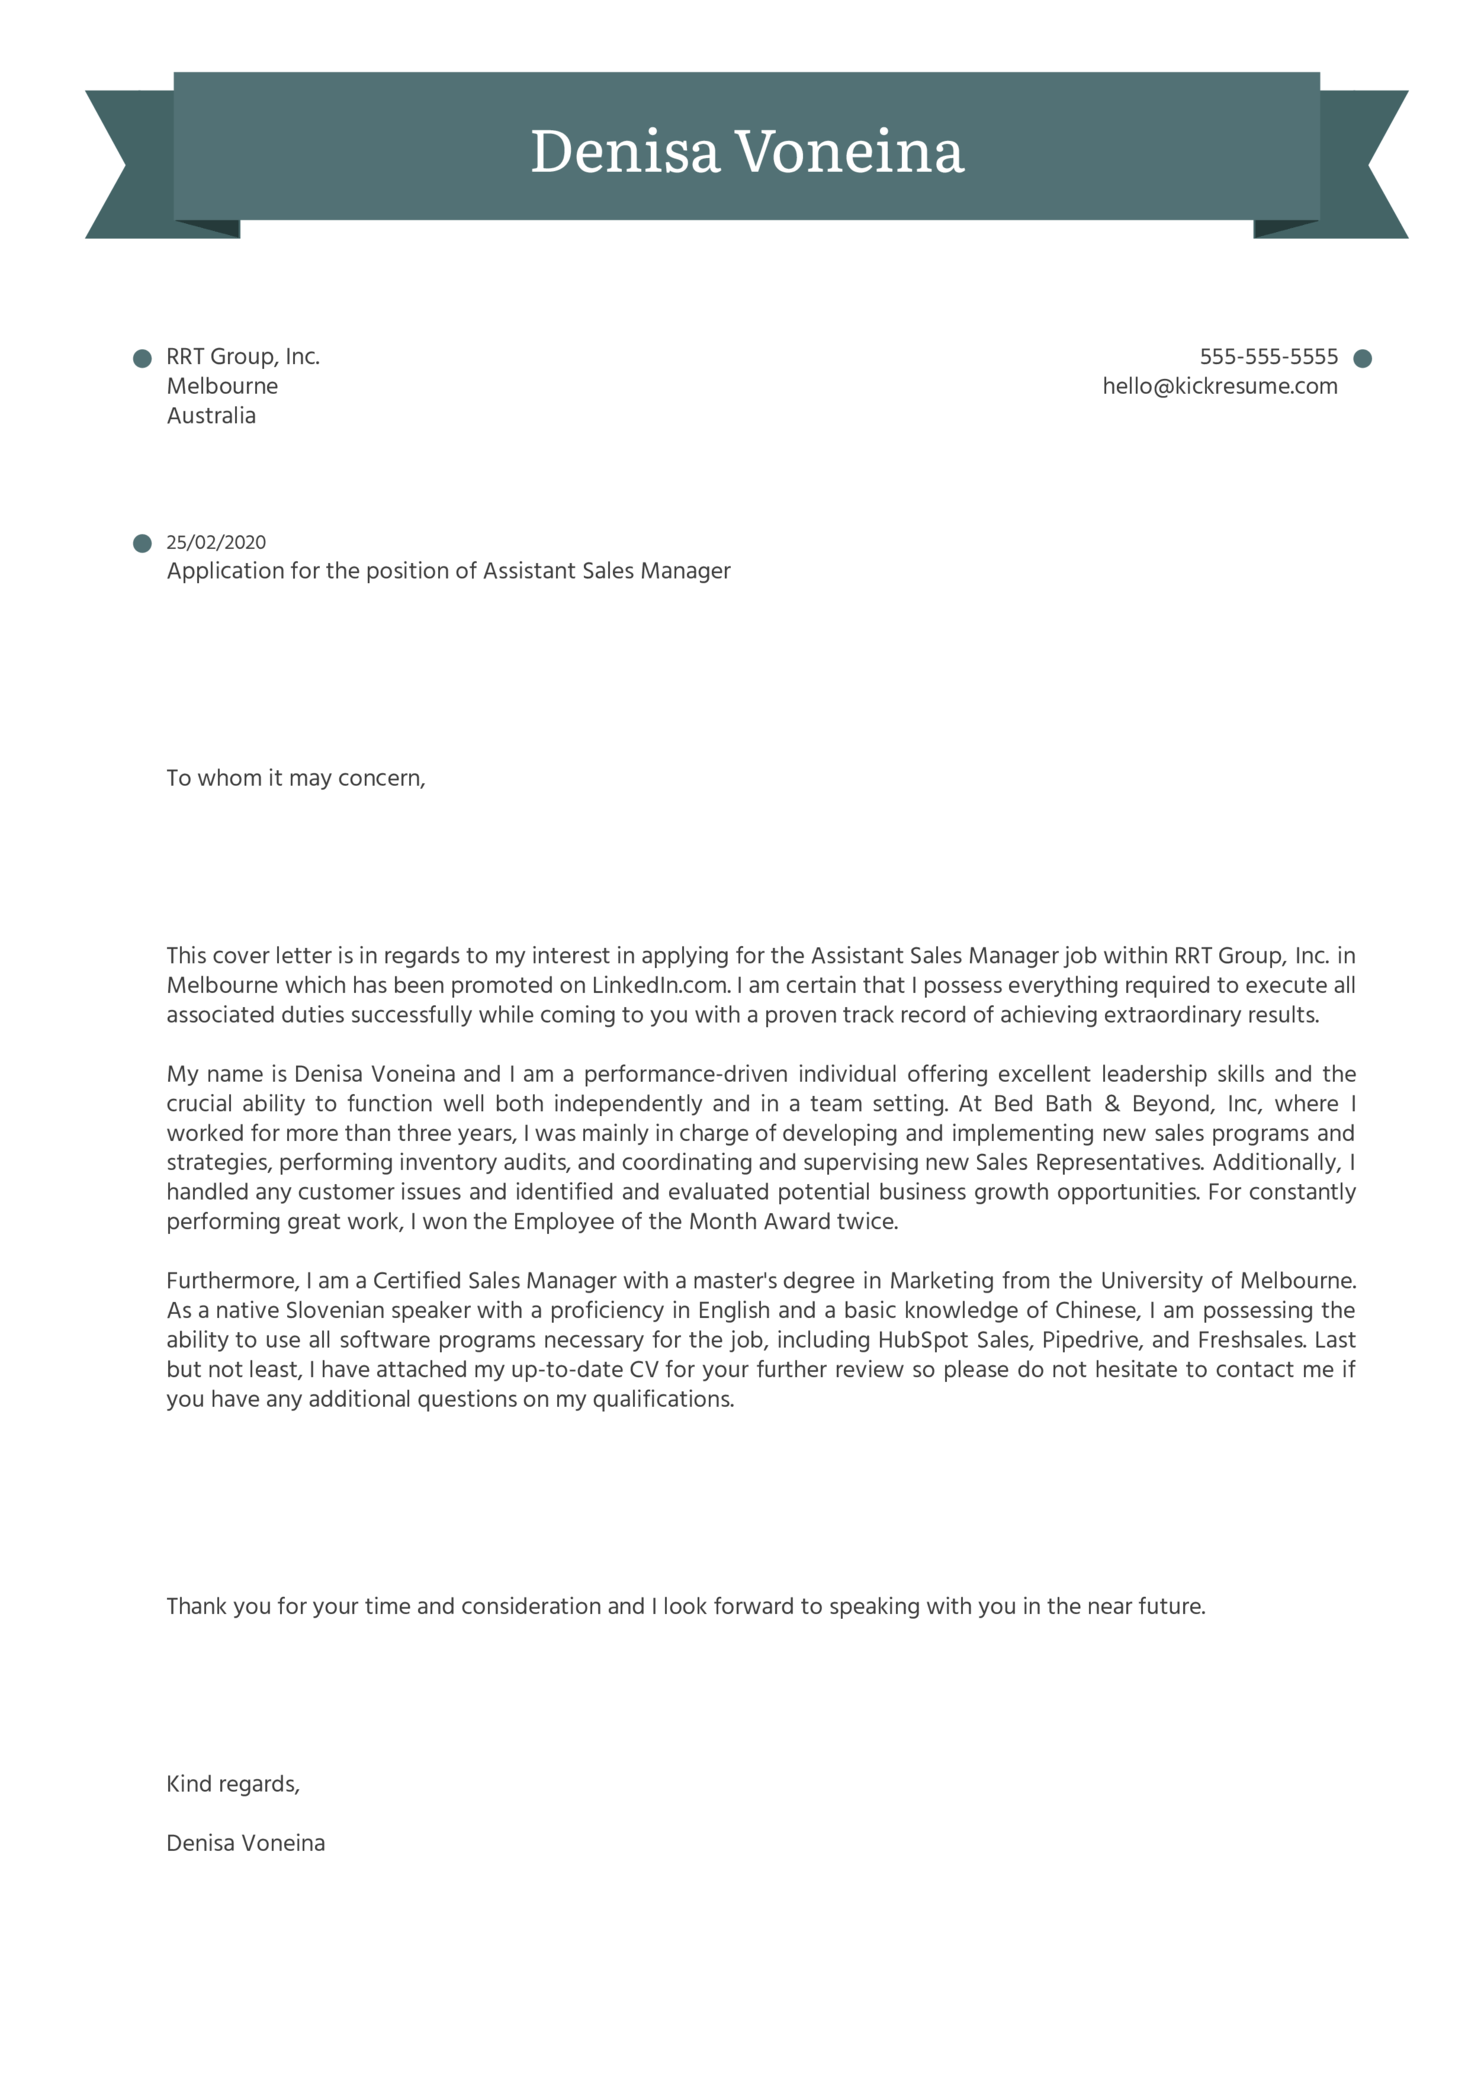 Assistant Sales Manager Cover Letter Sample